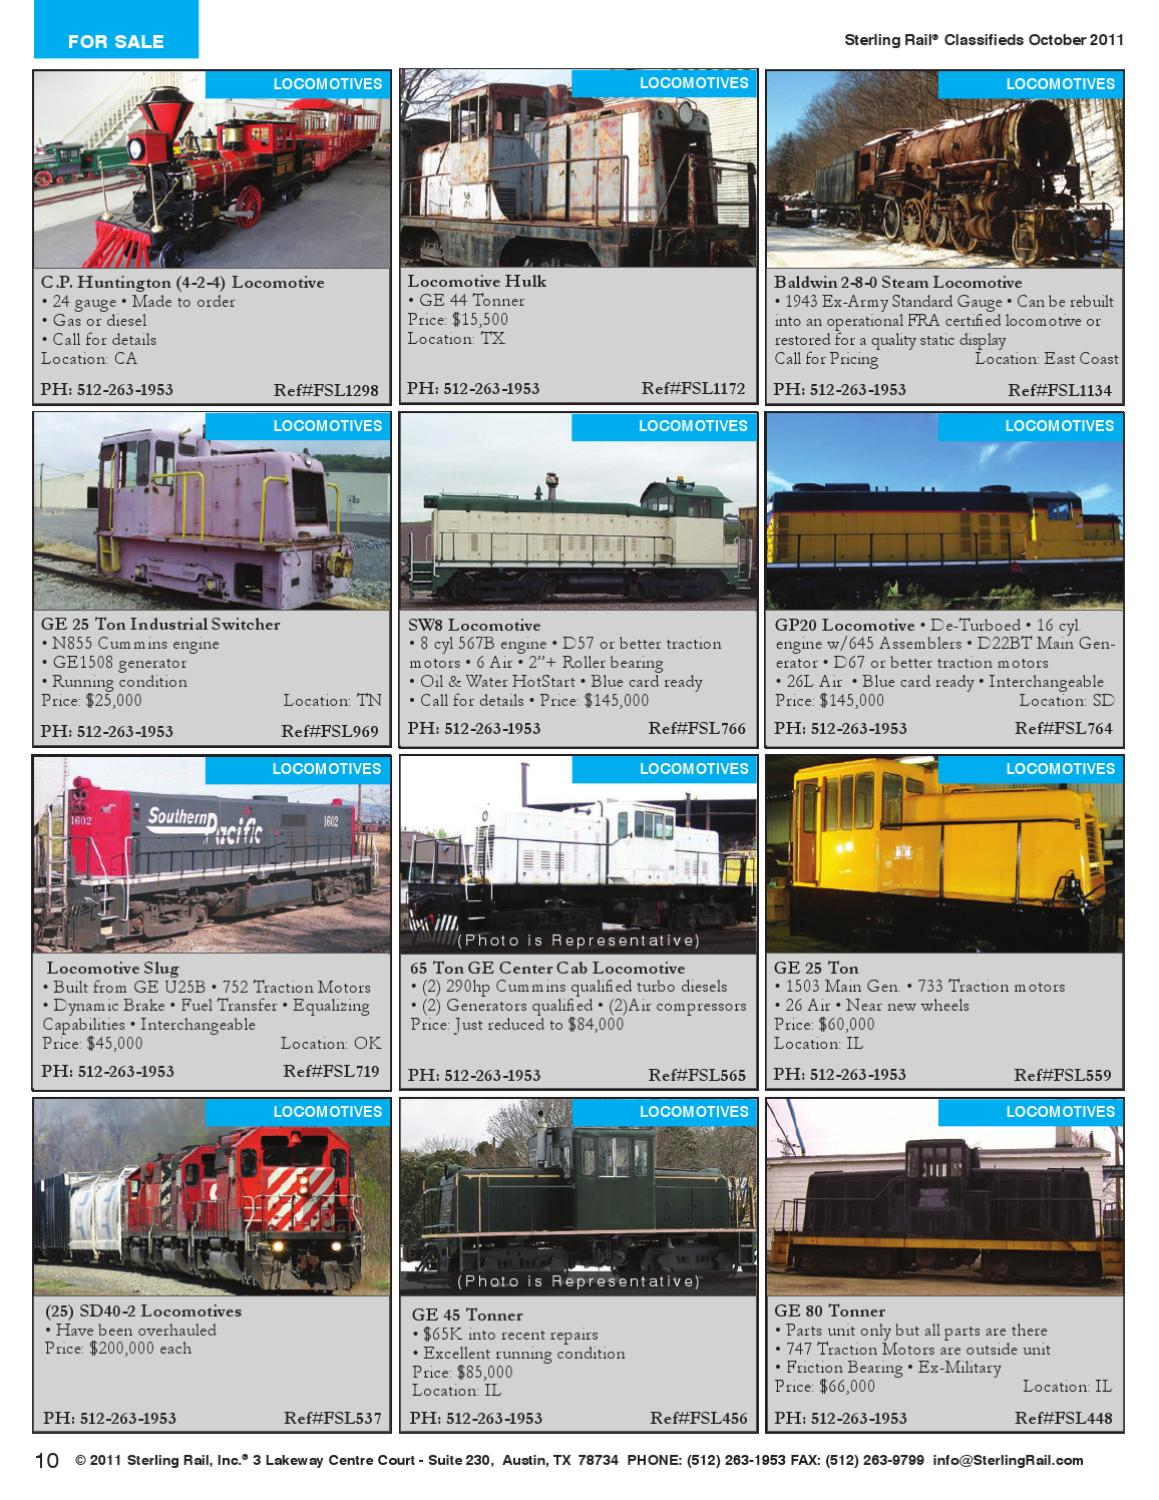 Sterling Rail® Classifieds October 2011 Issue by Sterling